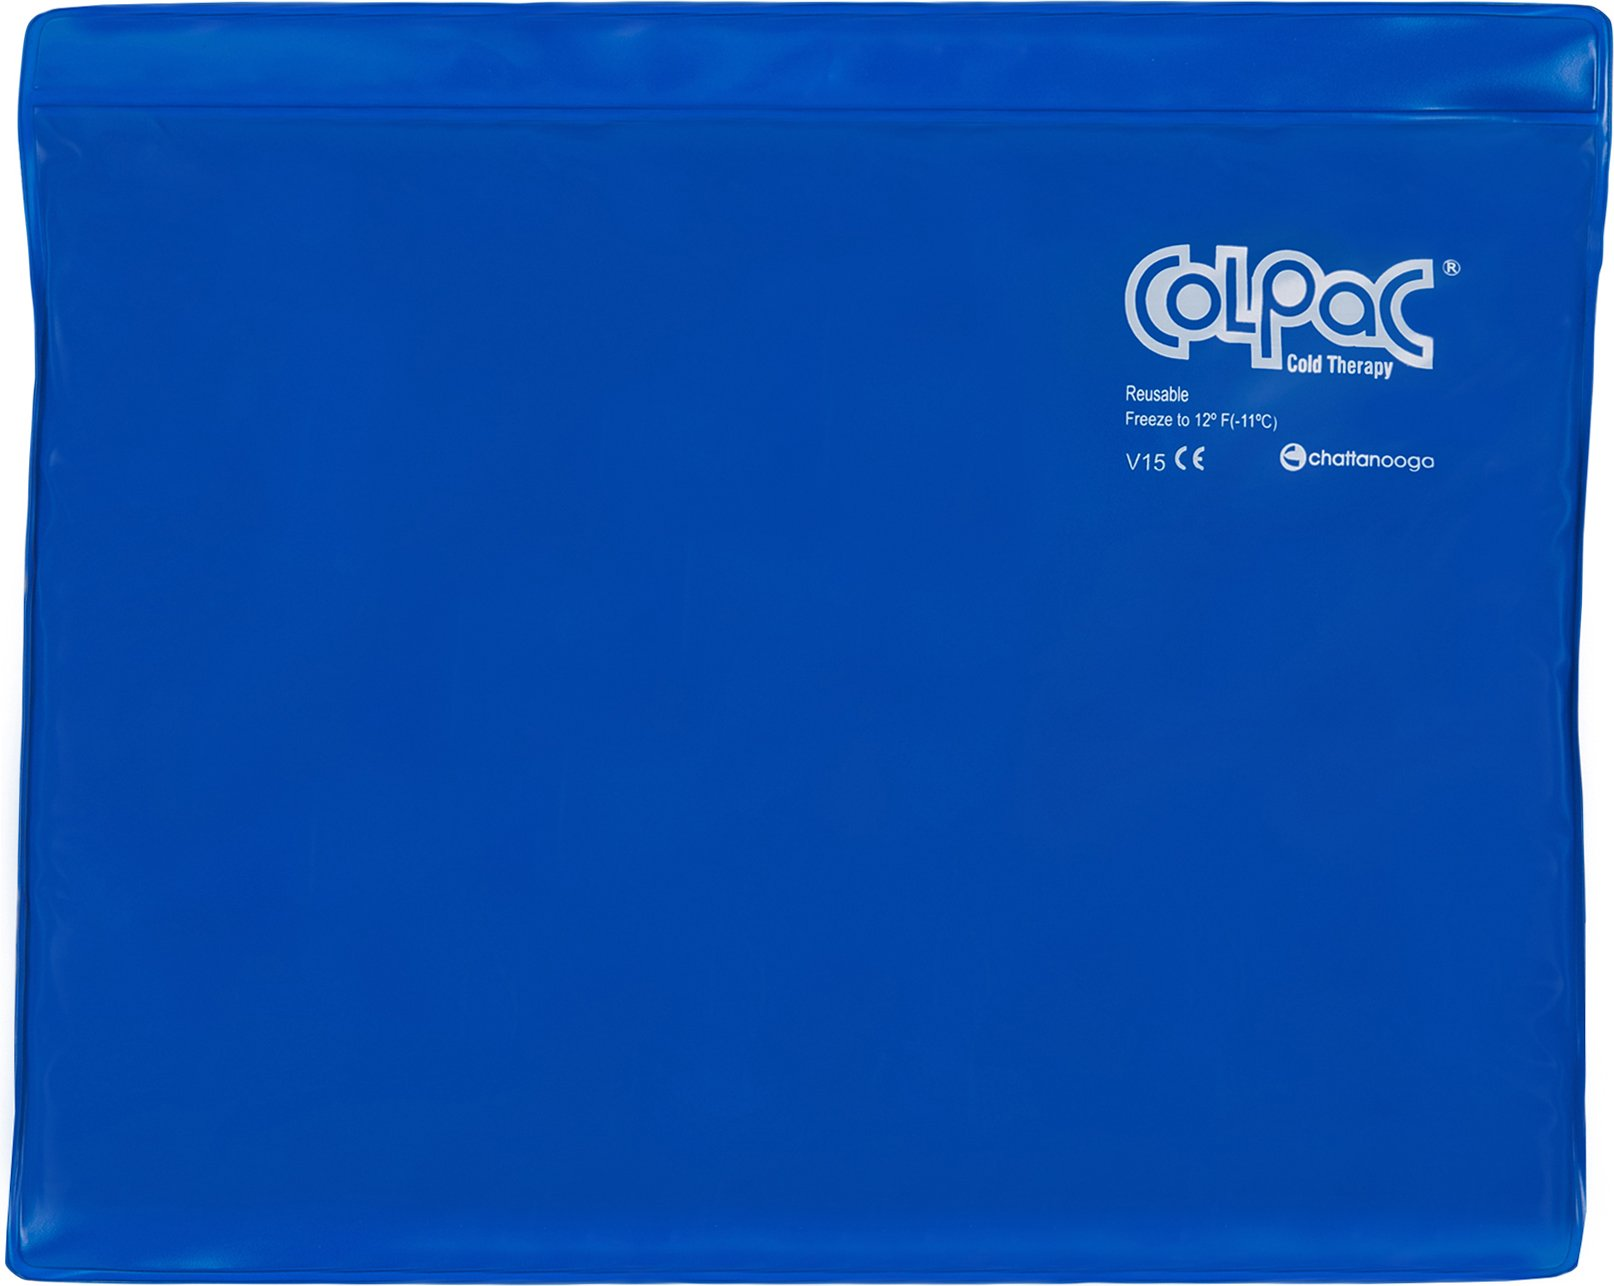 Chattanooga ColPac Reusable Gel Ice Pack Cold Therapy for Knee, Arm, Elbow, Shoulder, Back for Aches, Swelling, Bruises, Sprains, Inflammation (11''x14'') - Blue by Chattanooga